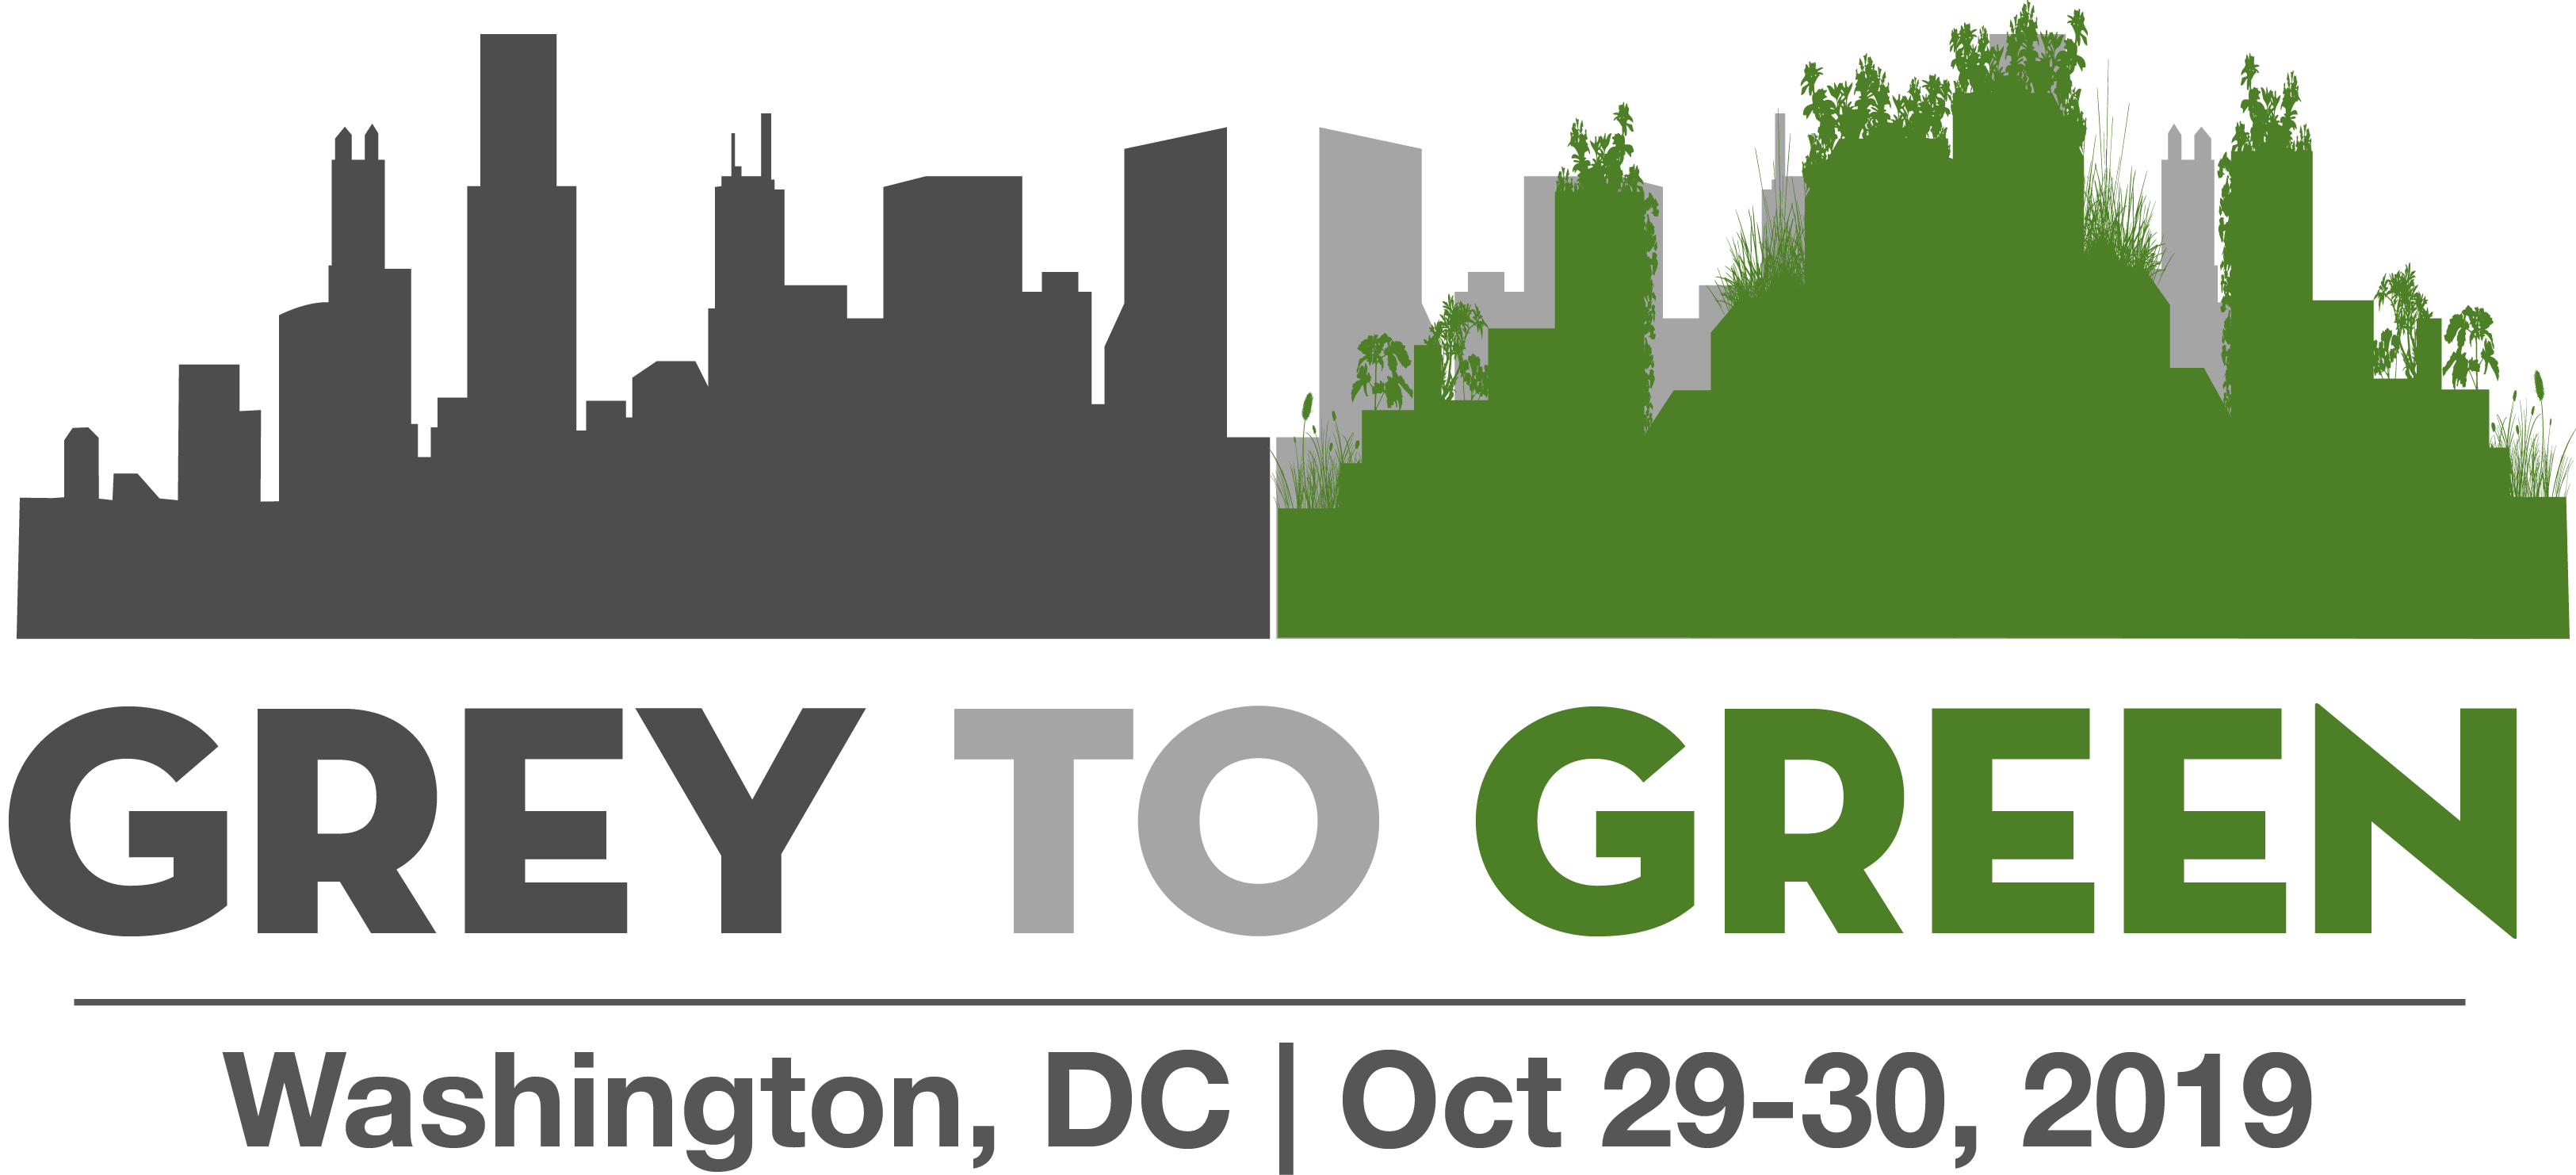 Grey to Green: DC Metro Region | Call for Proposals